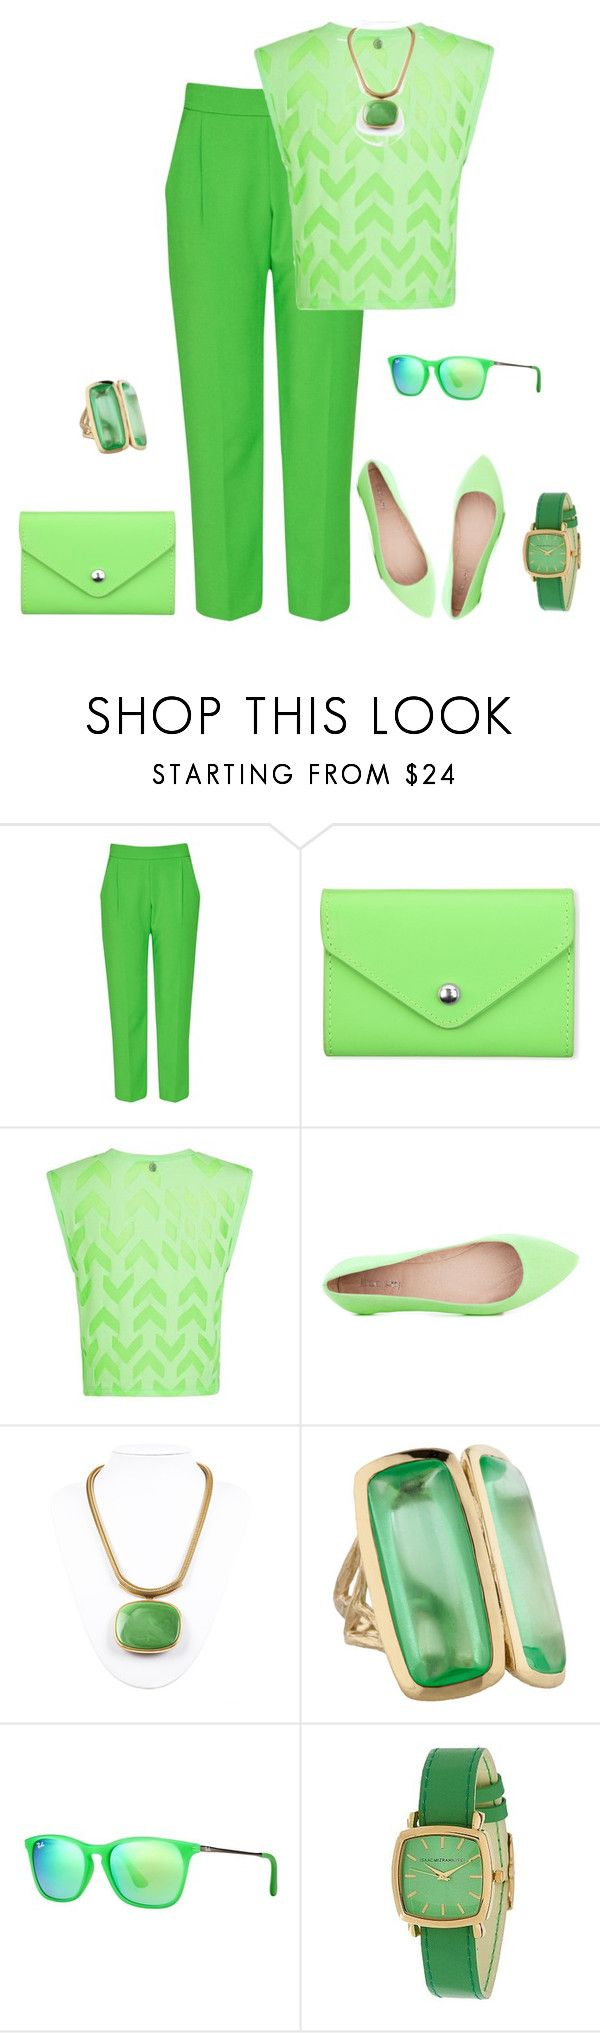 """""""outfit 2397"""" by natalyag ❤ liked on Polyvore featuring French Connection, Paperthinks, Lorna Jane, Joe's Jeans, Lanvin, Elizabeth Showers, Ray-Ban and Isaac Mizrahi"""